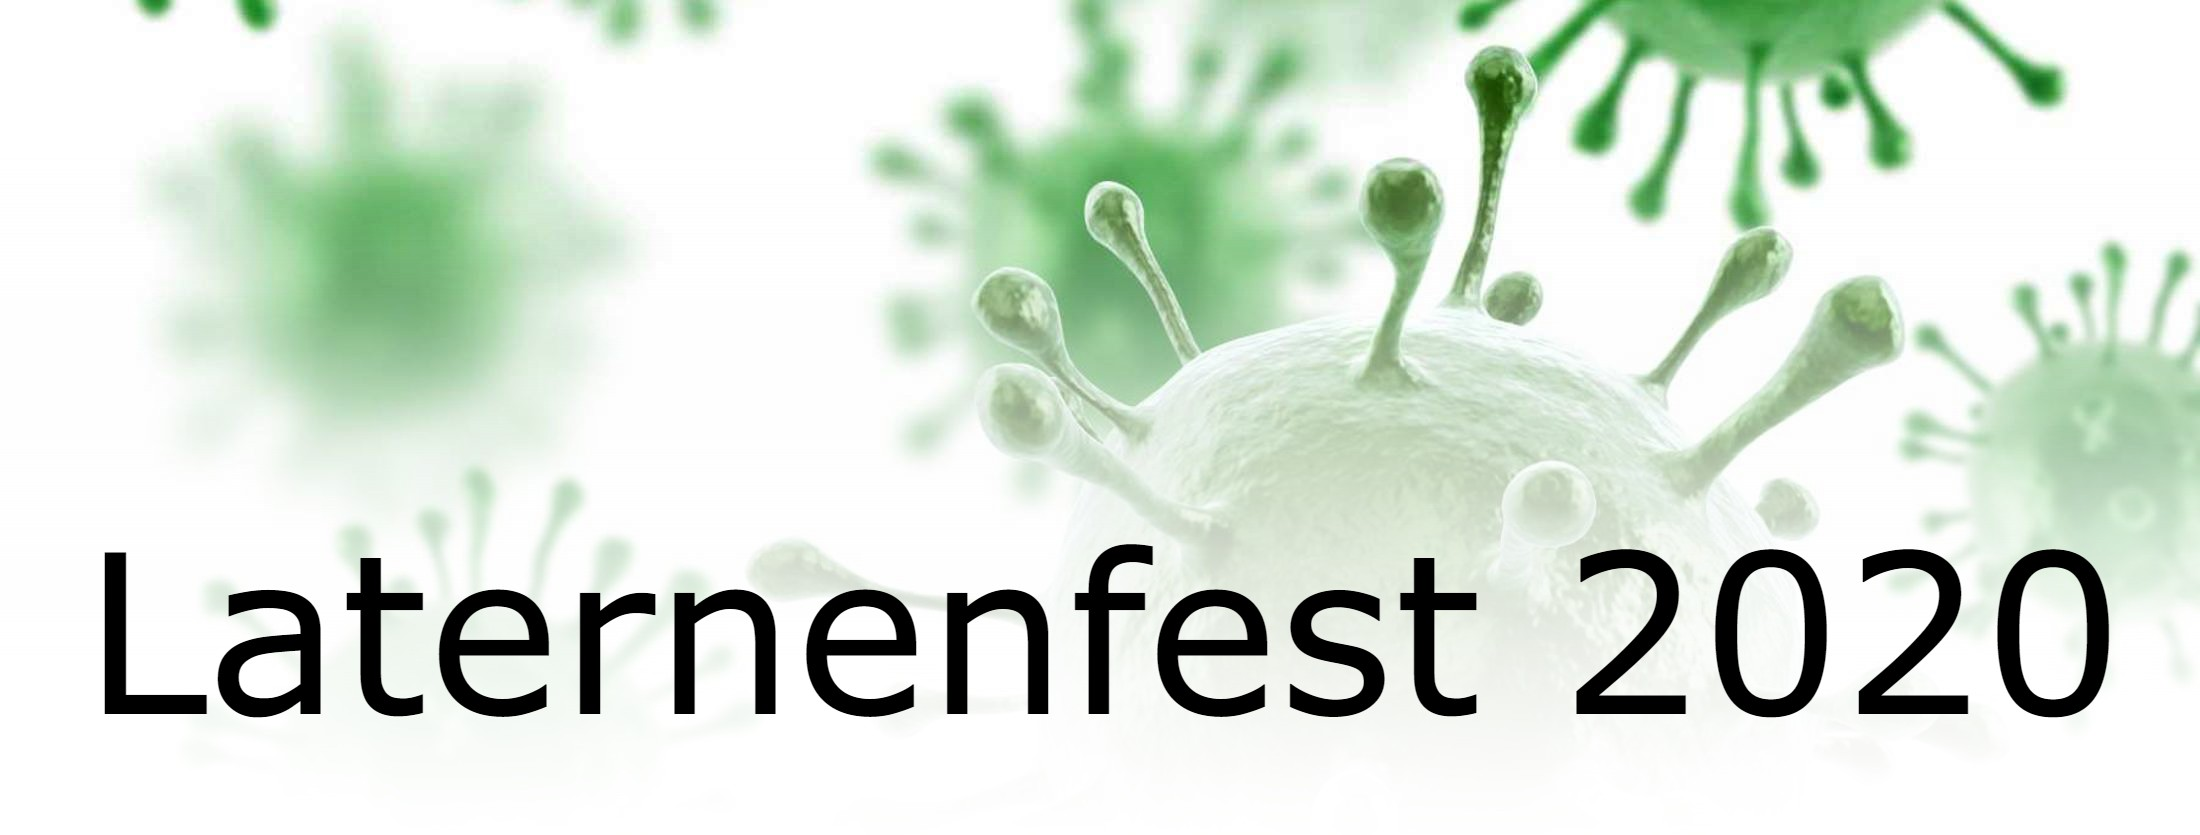 laternenfest 2020